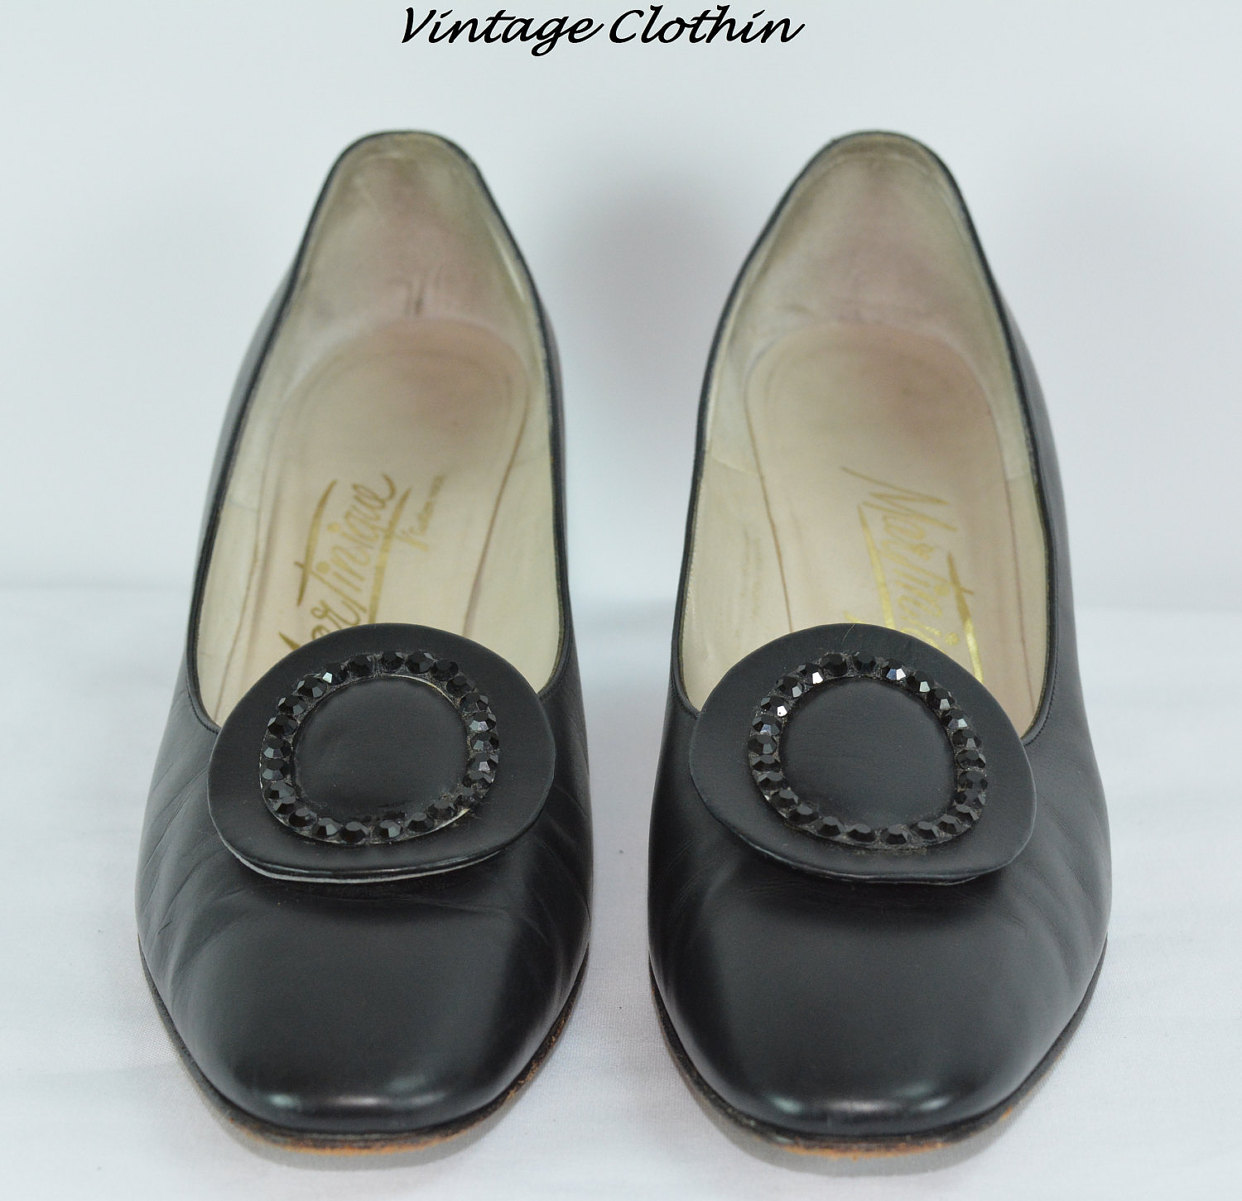 c1950s Martinique Black Leather Kitten Heel Pumps